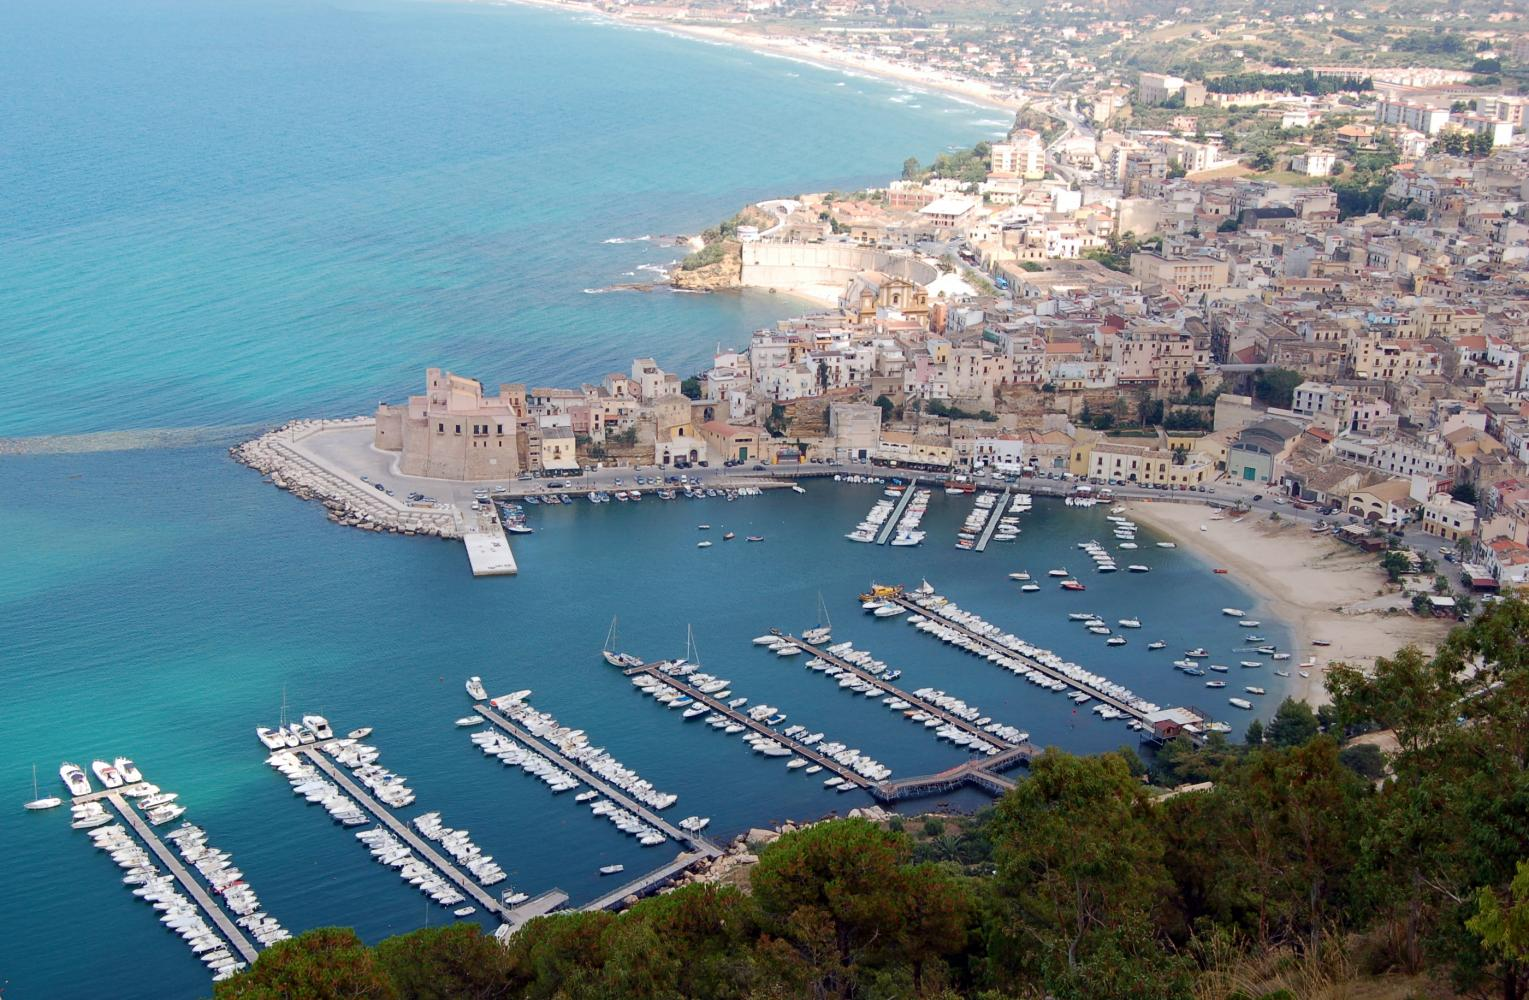 View from above - Castellammare del Golfo